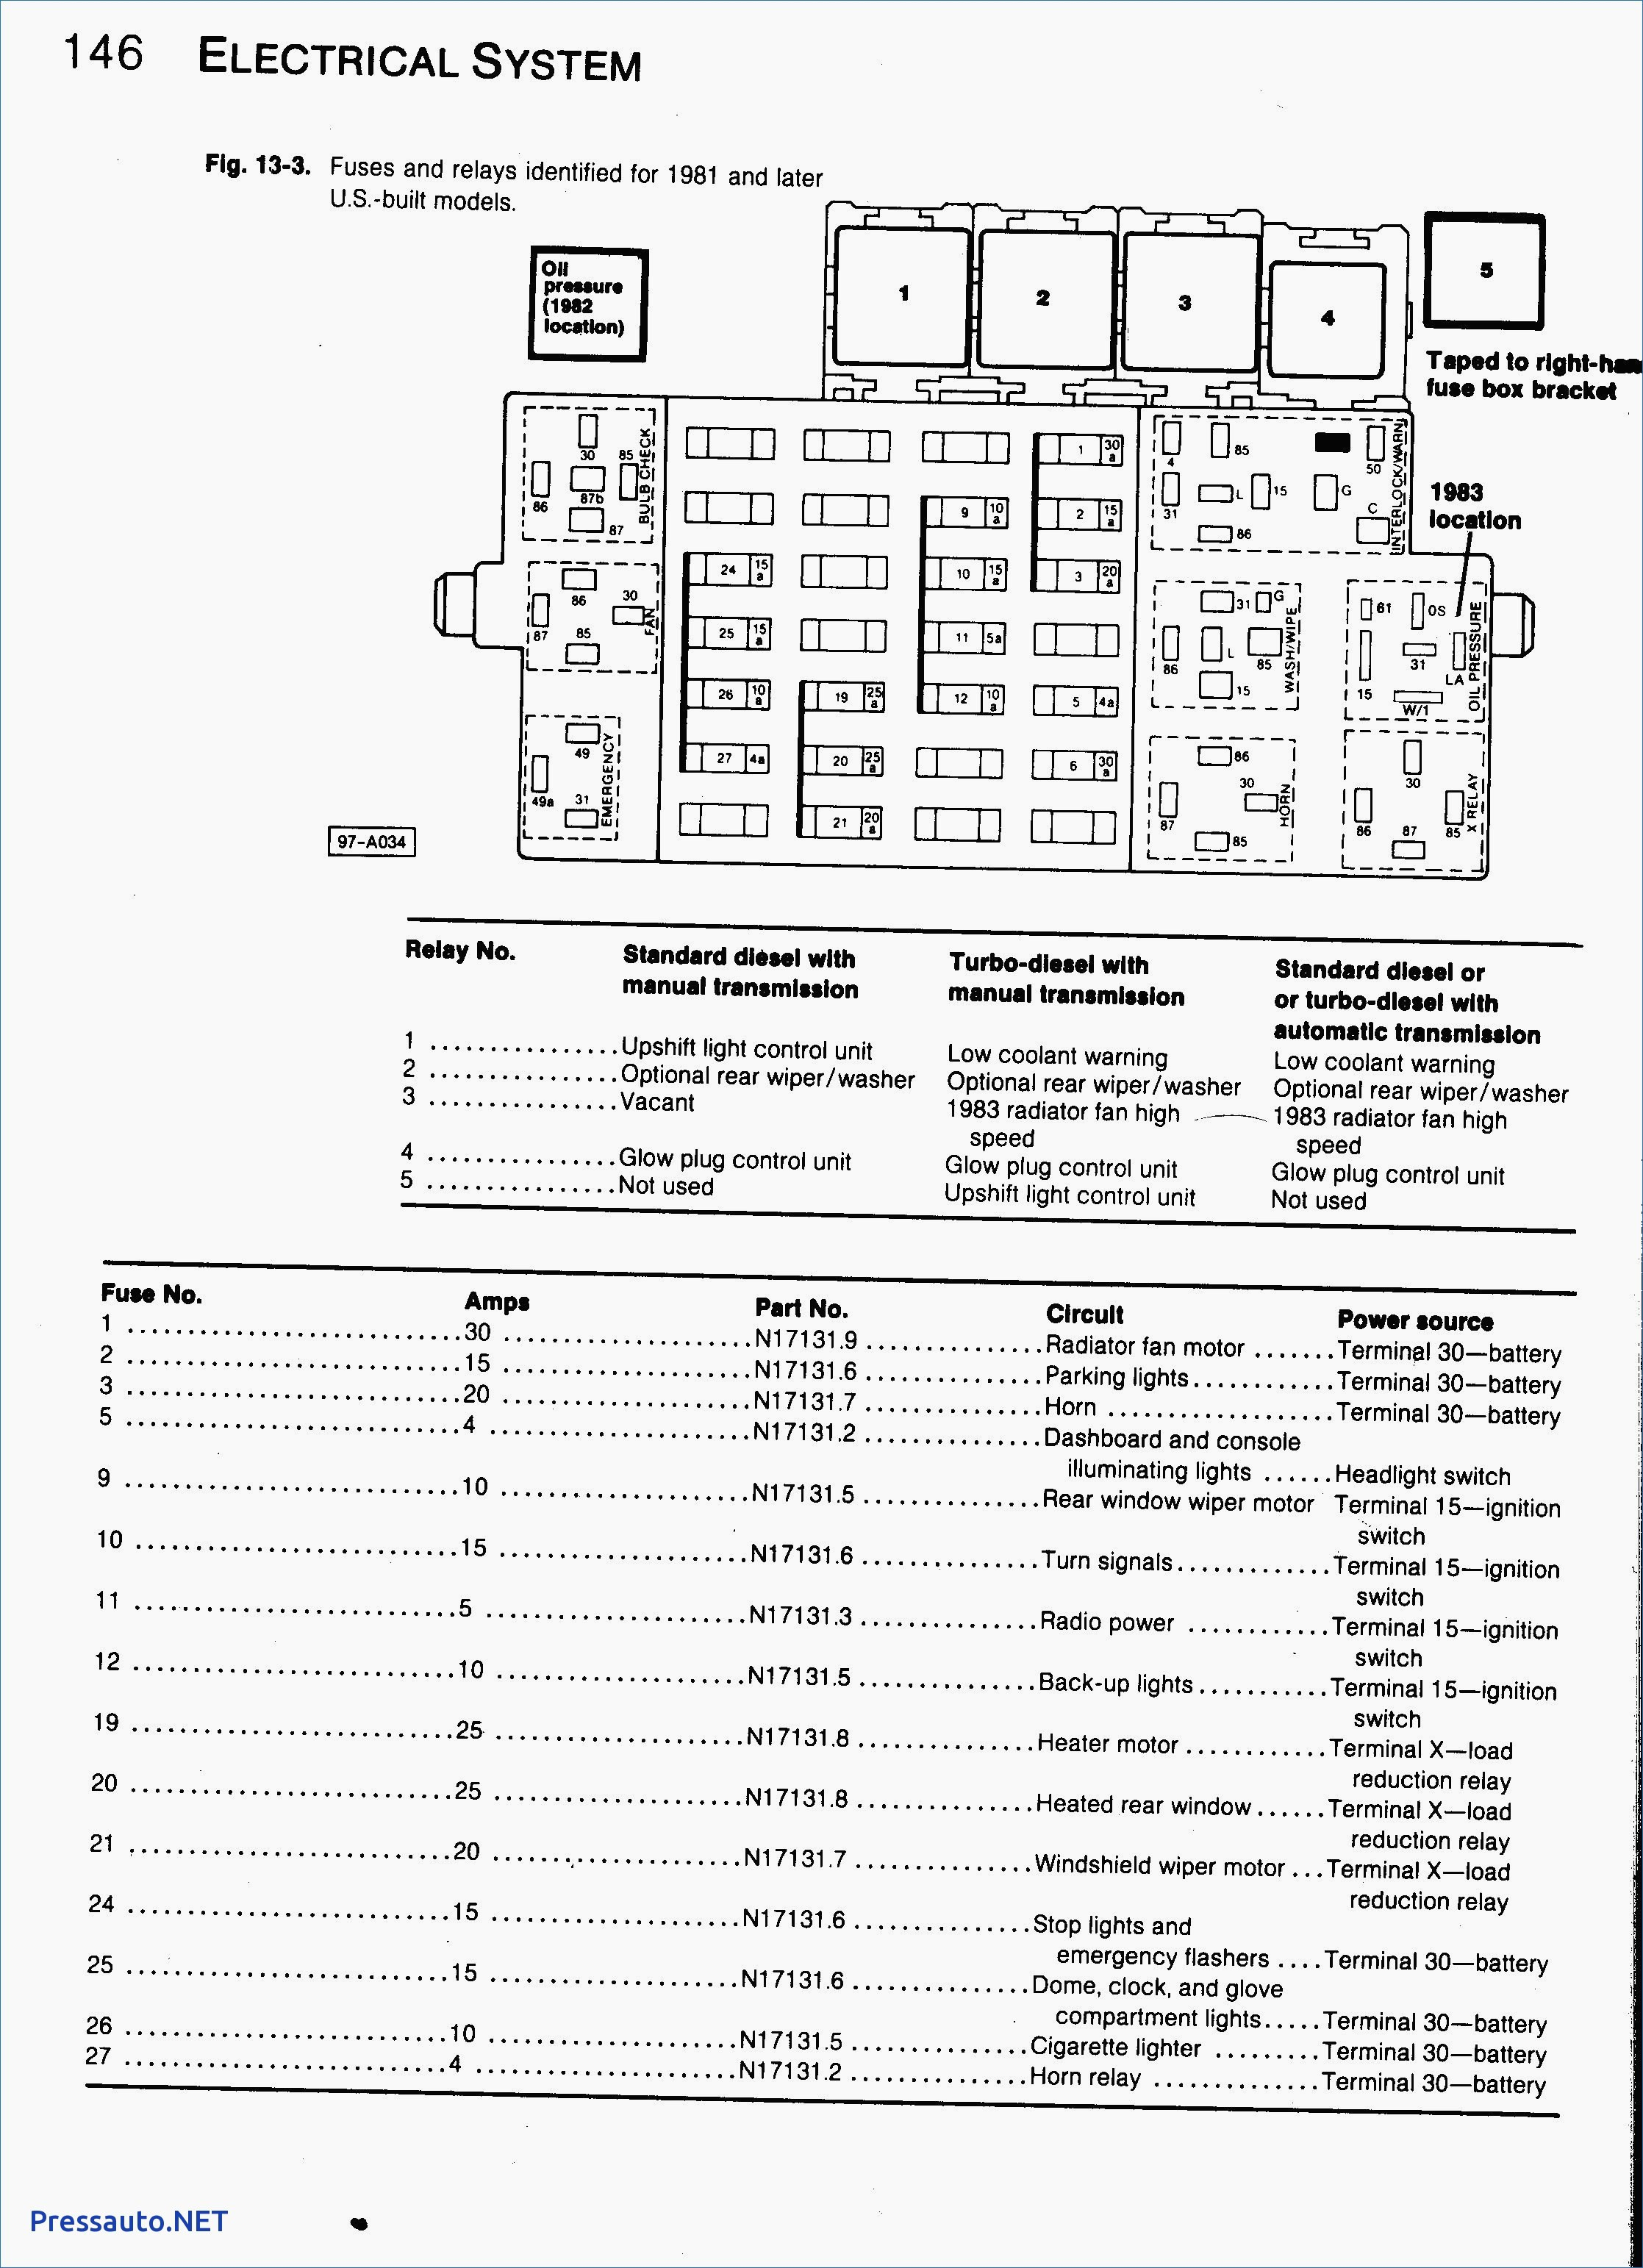 2000 Volkswagen Passat Engine Diagram 2012 Volkswagen Jetta Fuse Diagram Wiring Diagrams Schematics • Of 2000 Volkswagen Passat Engine Diagram